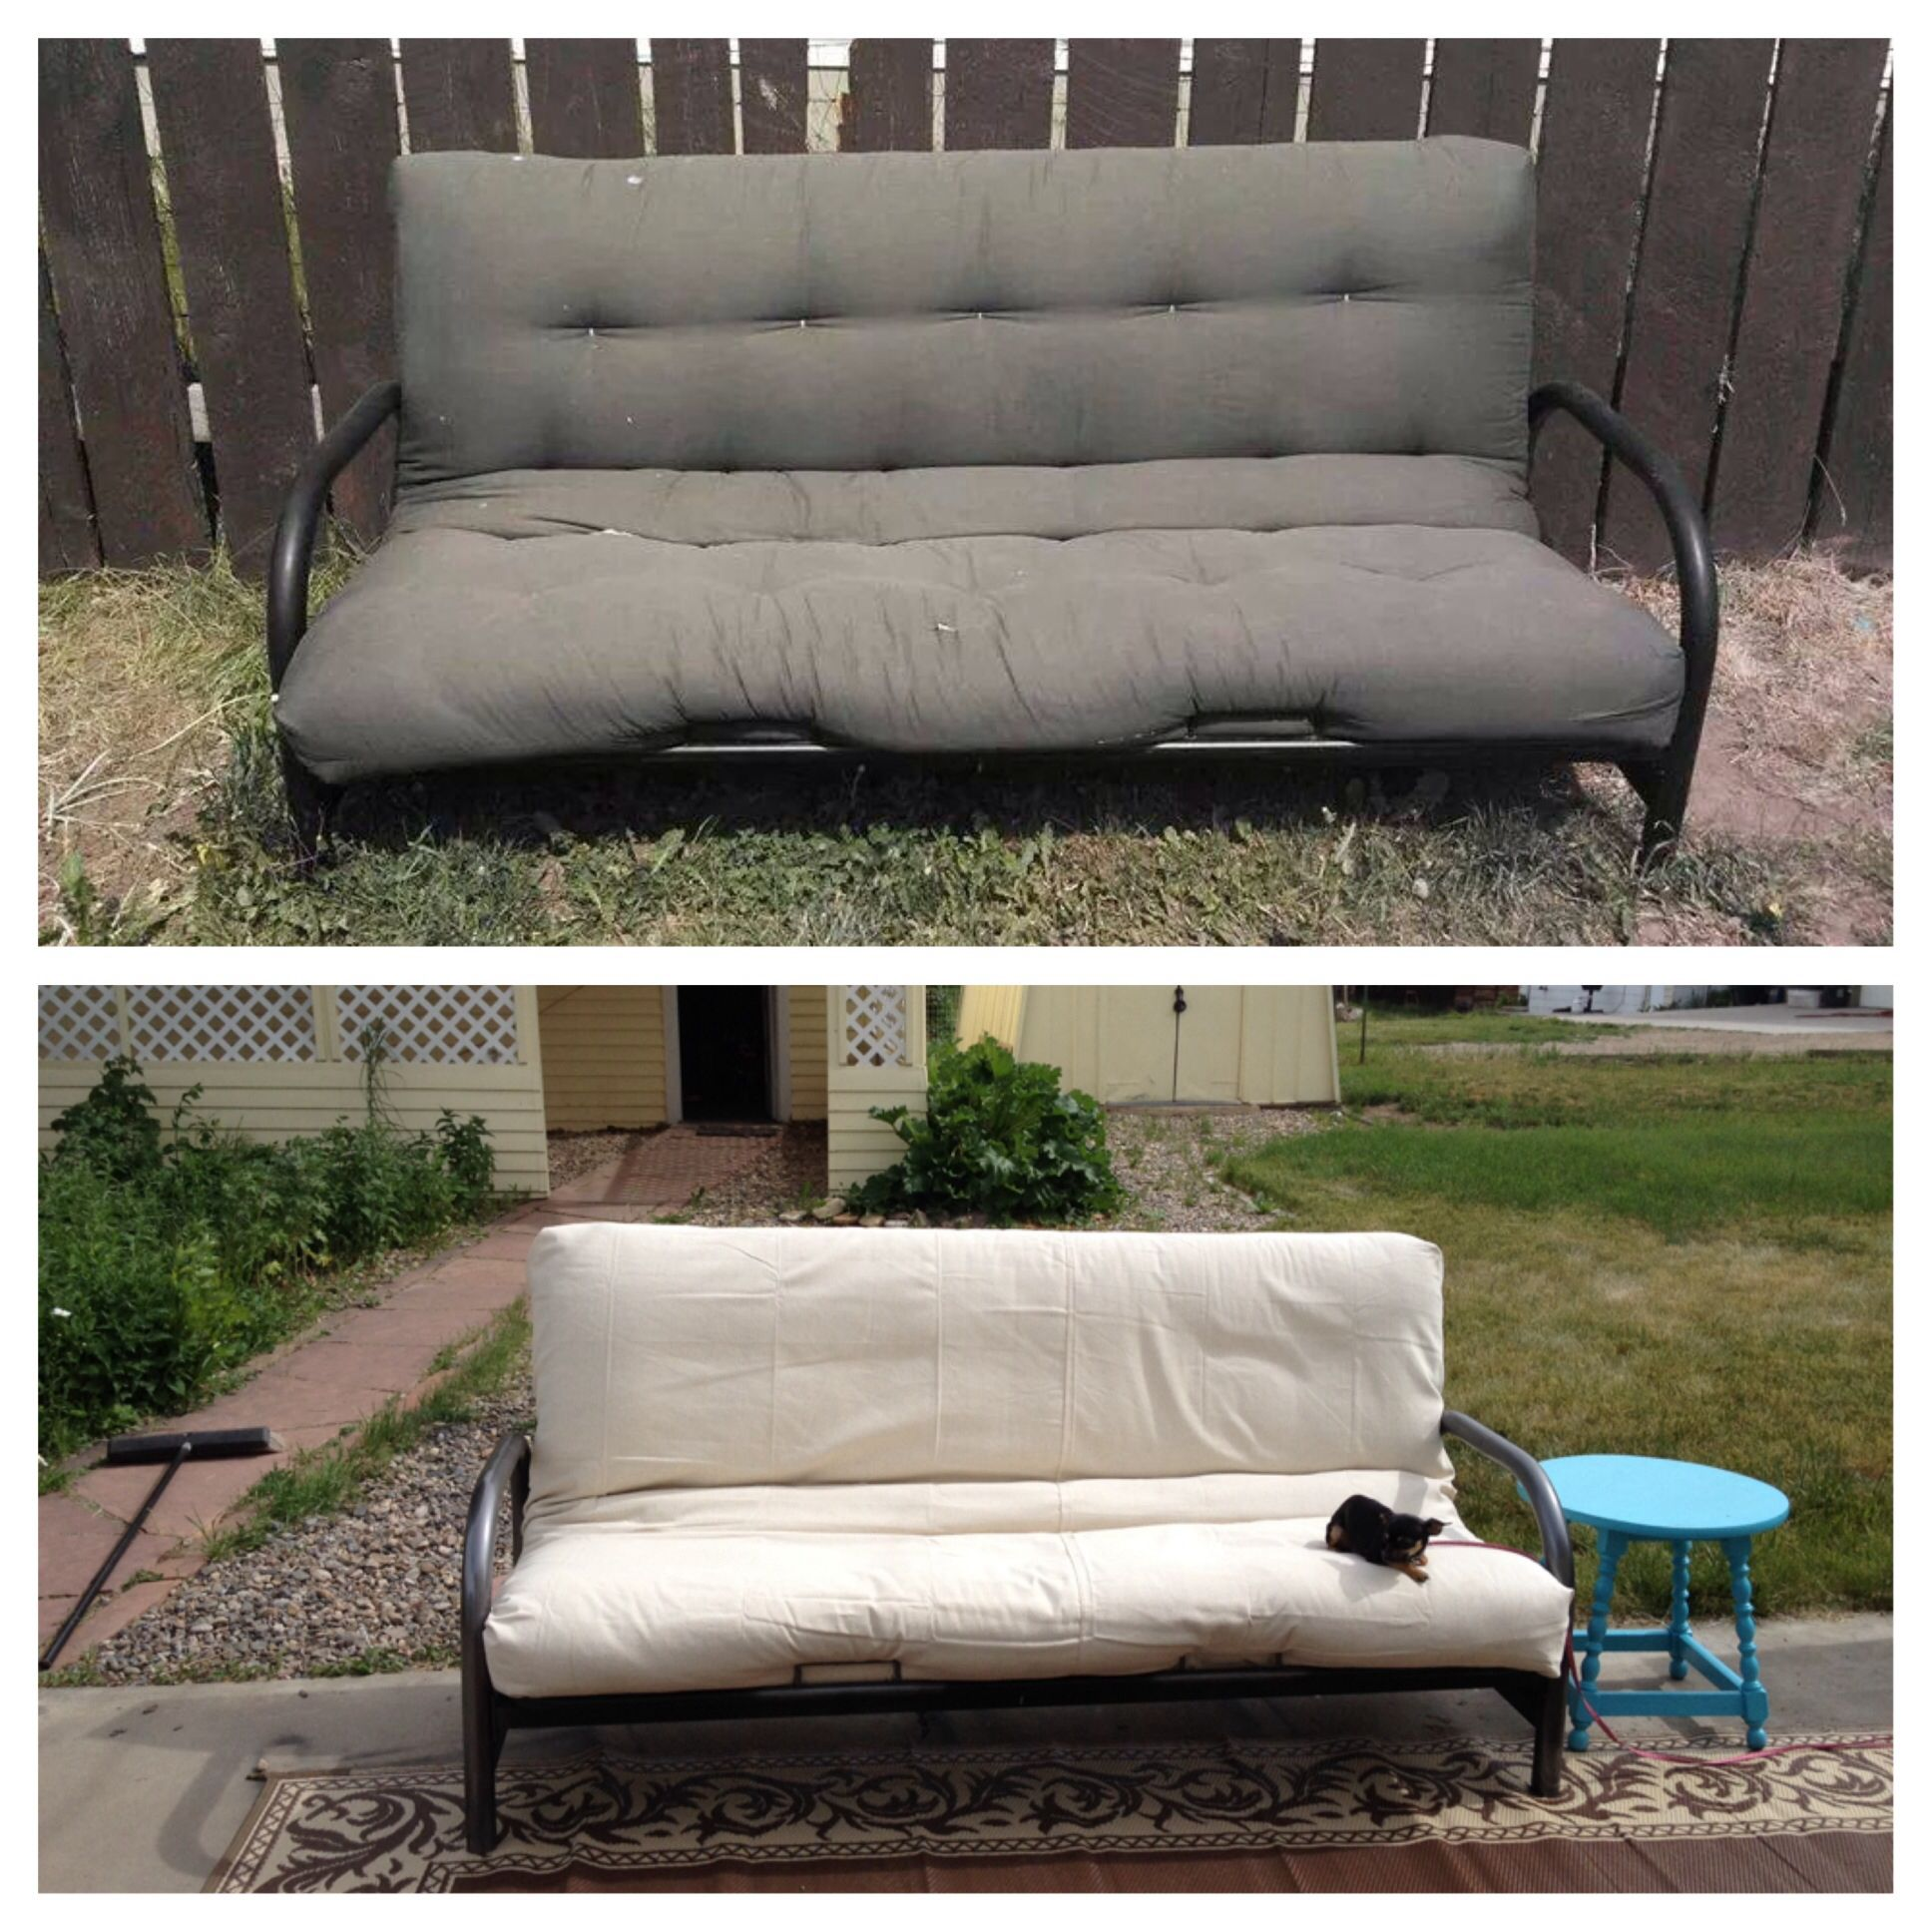 Bought This Old Futon For Patio For 15 And Recovered It With